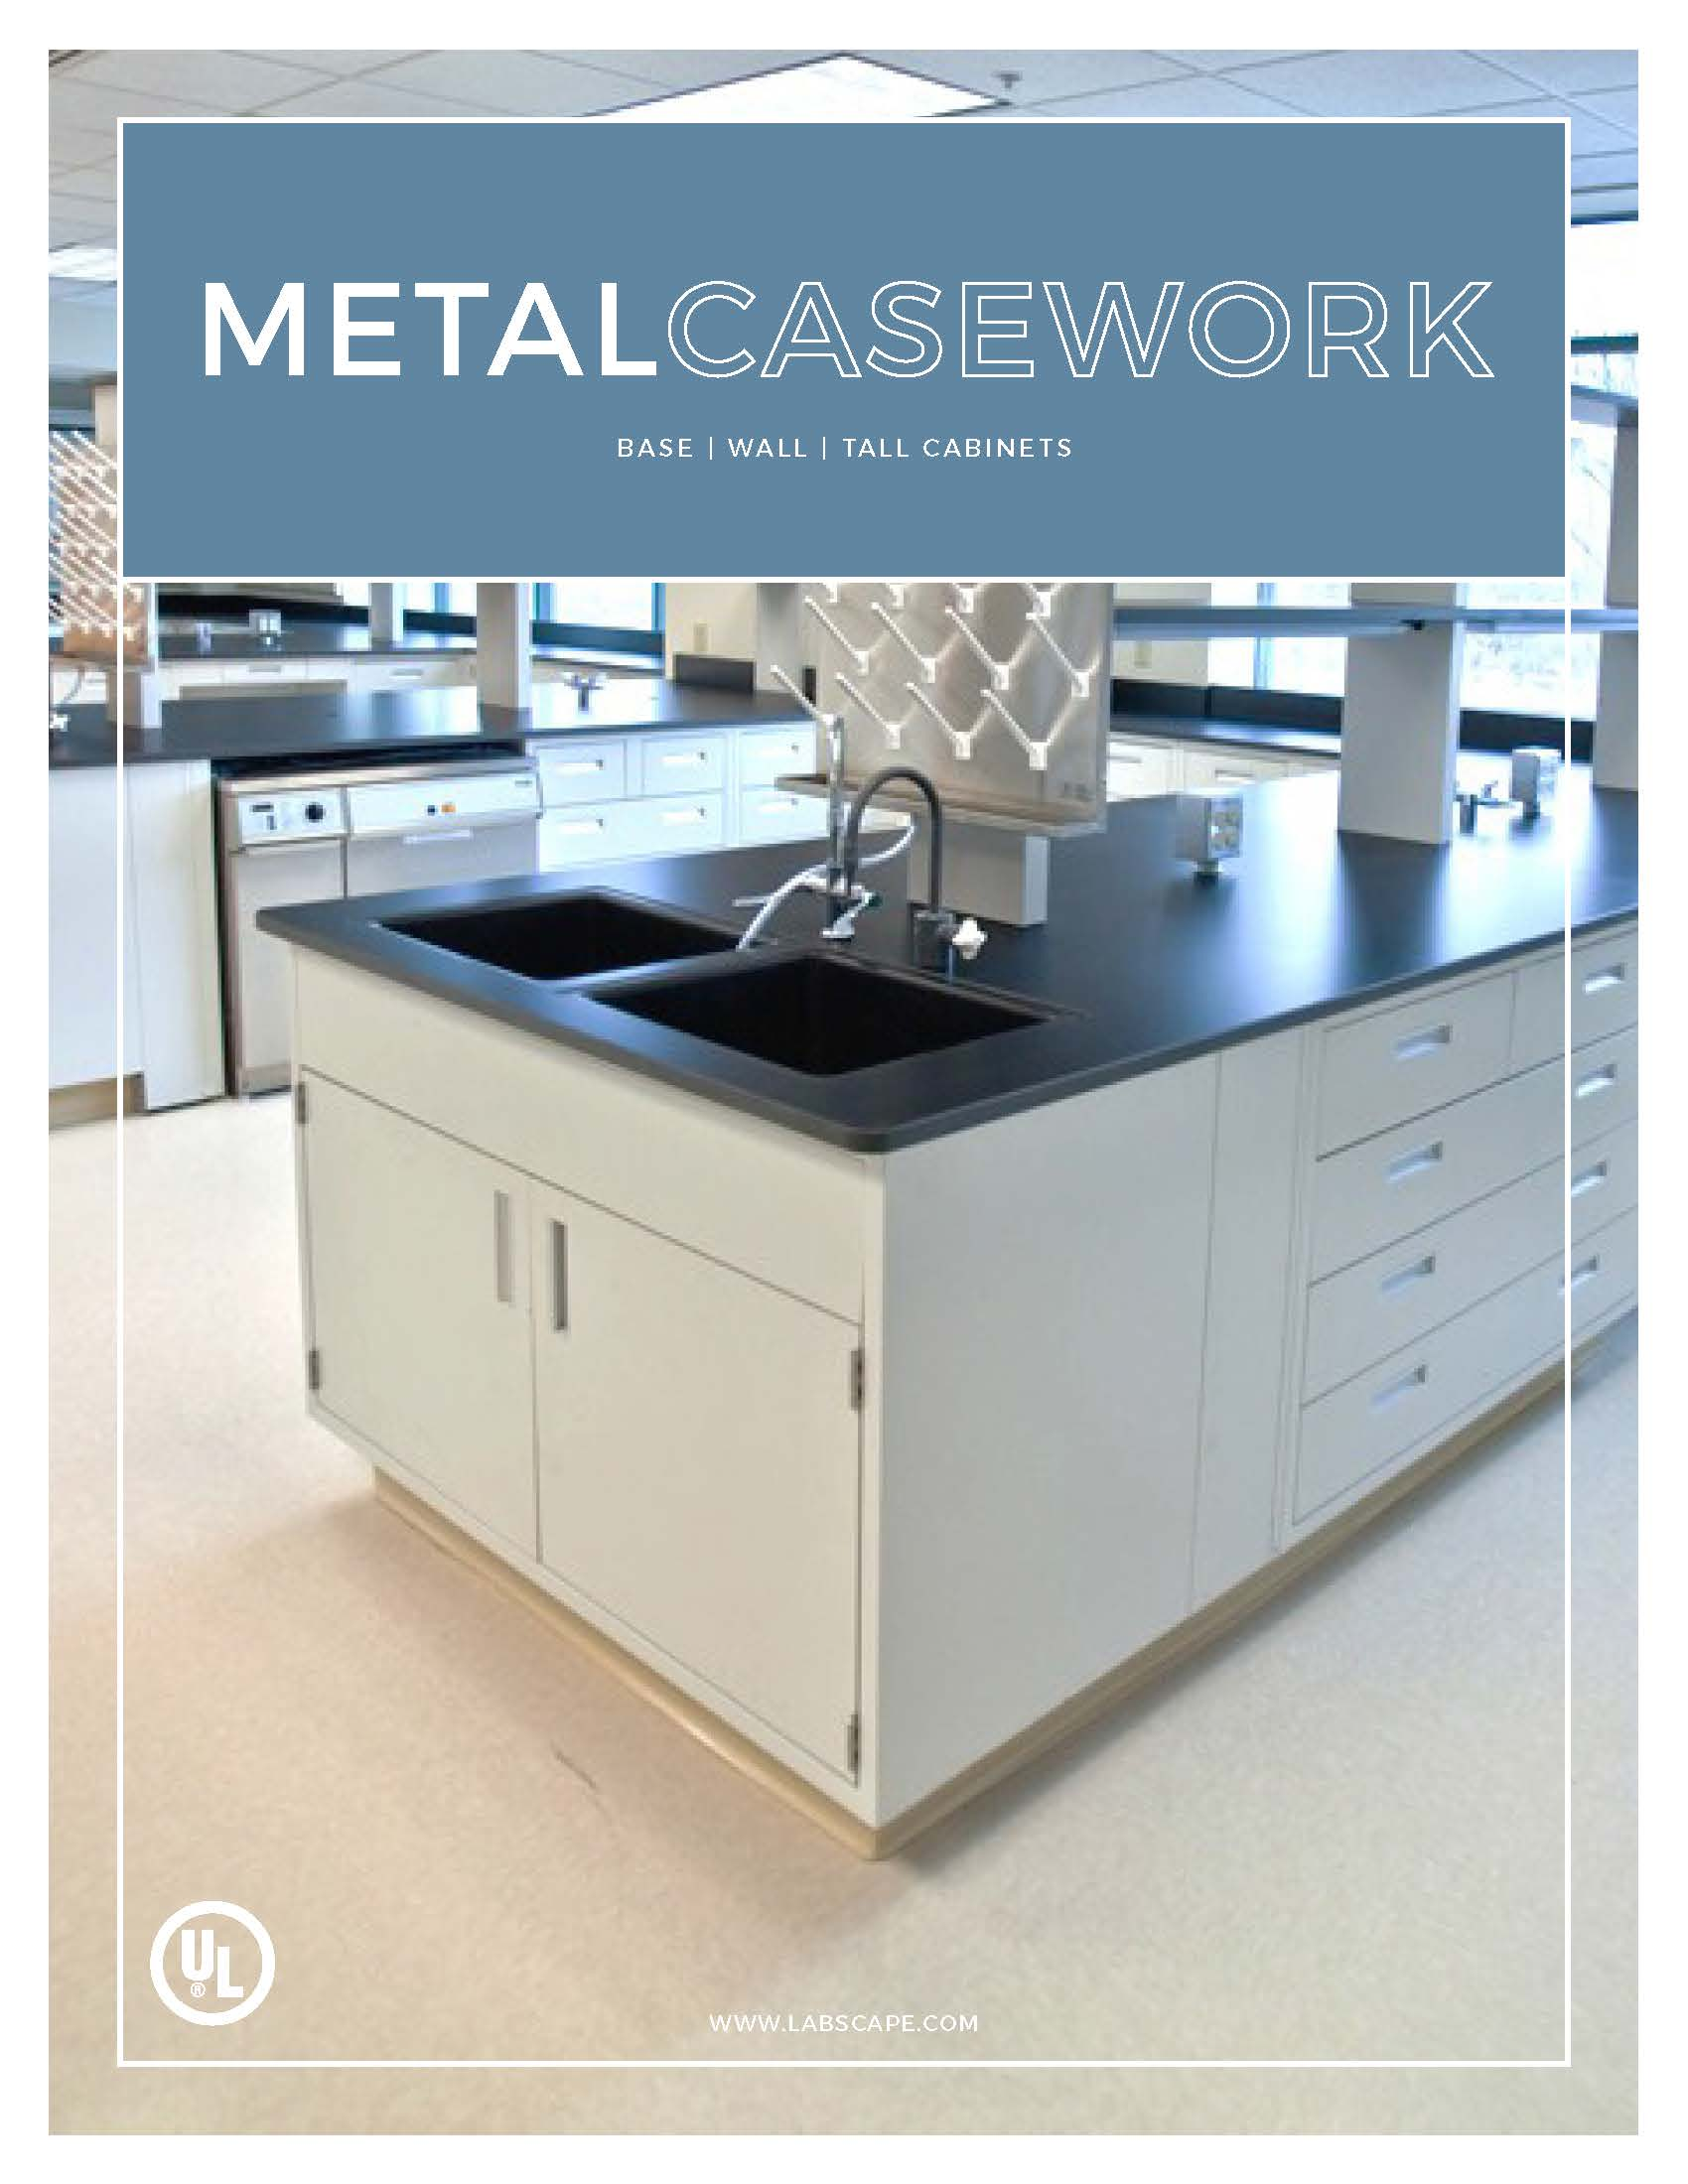 Labscape Metal-Labatory-casework-catalog_Page_1.jpg